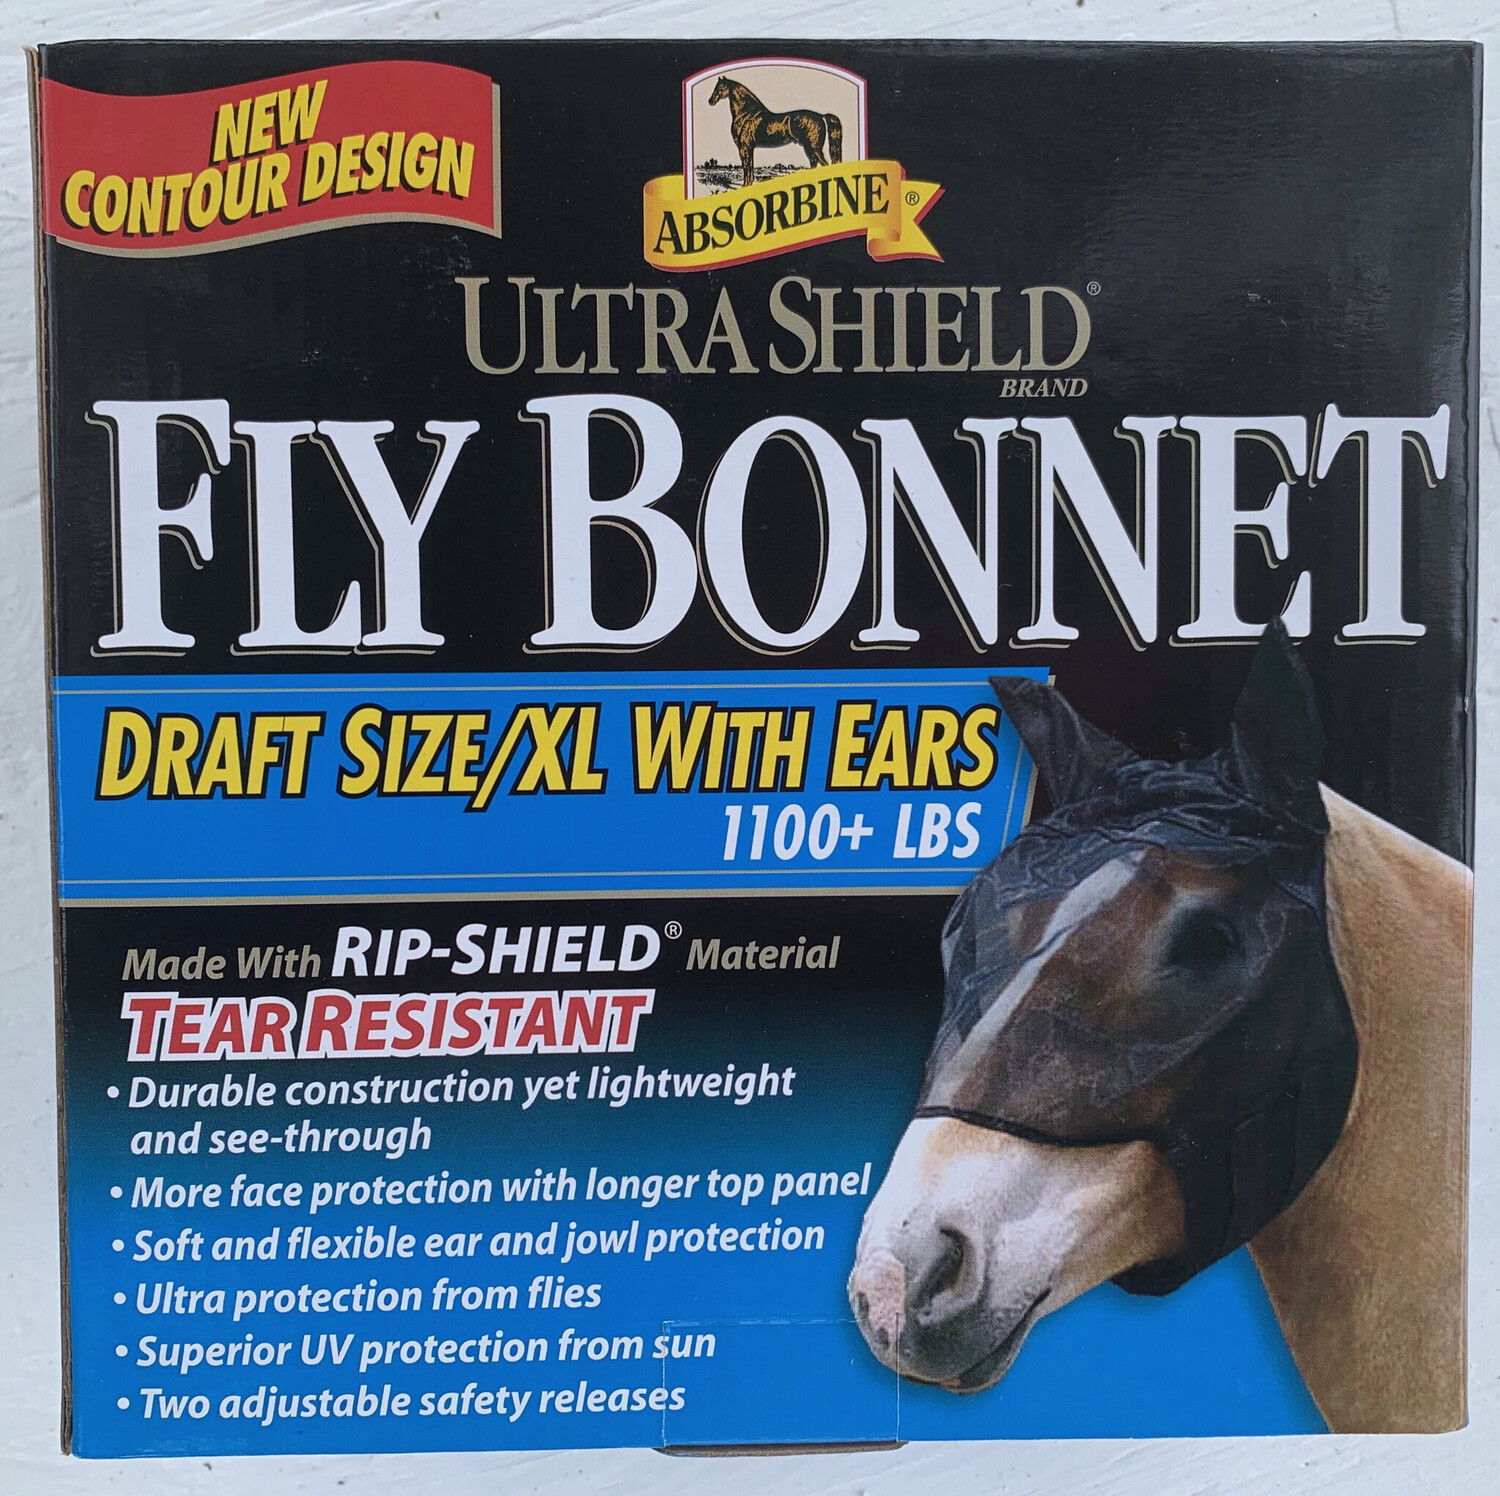 Ultrashield Fly Bonnet (10 Per Case)